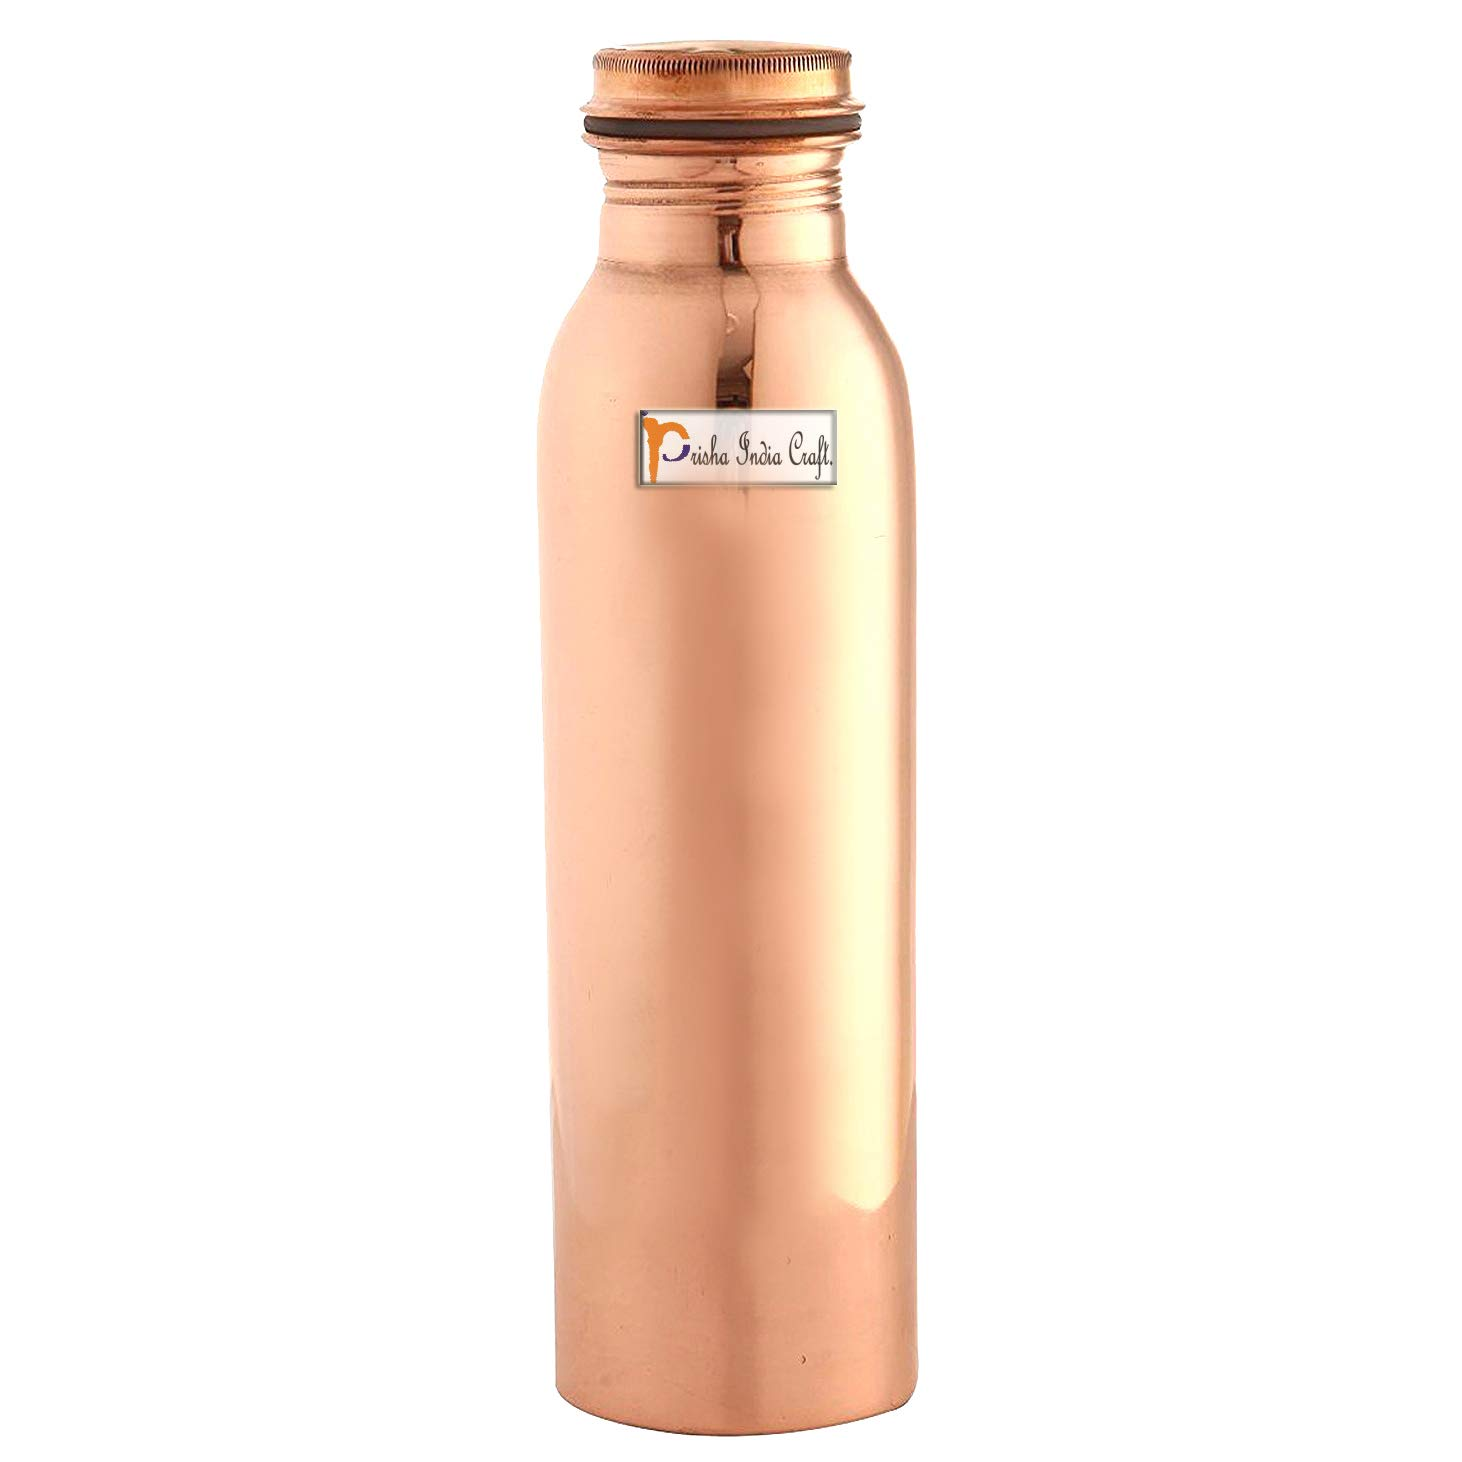 Prisha India Craft Pure Copper Water Bottle Thermos Design , Drinking Water , Solid Copper Without Joint 20 Ounce